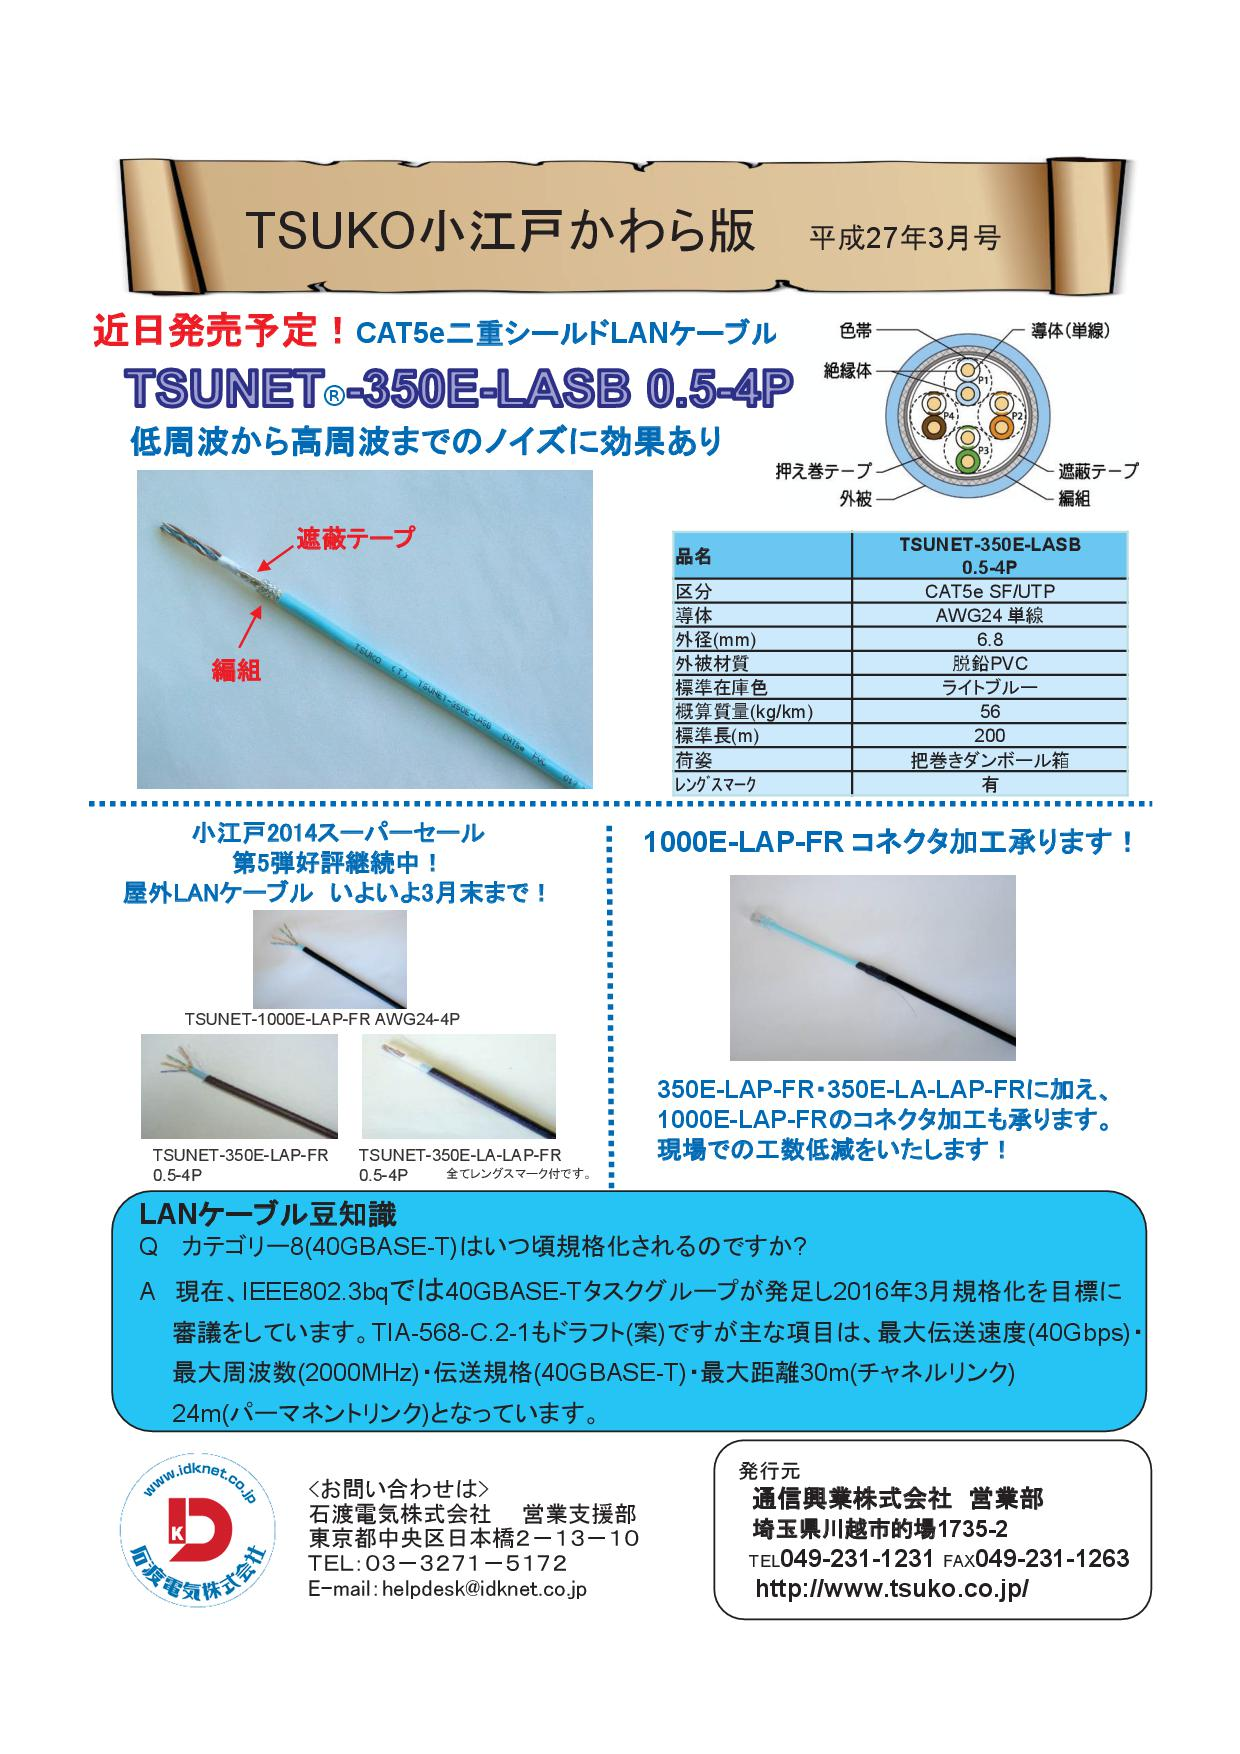 item_news_TSUKO_kawaraban_march20150226-001